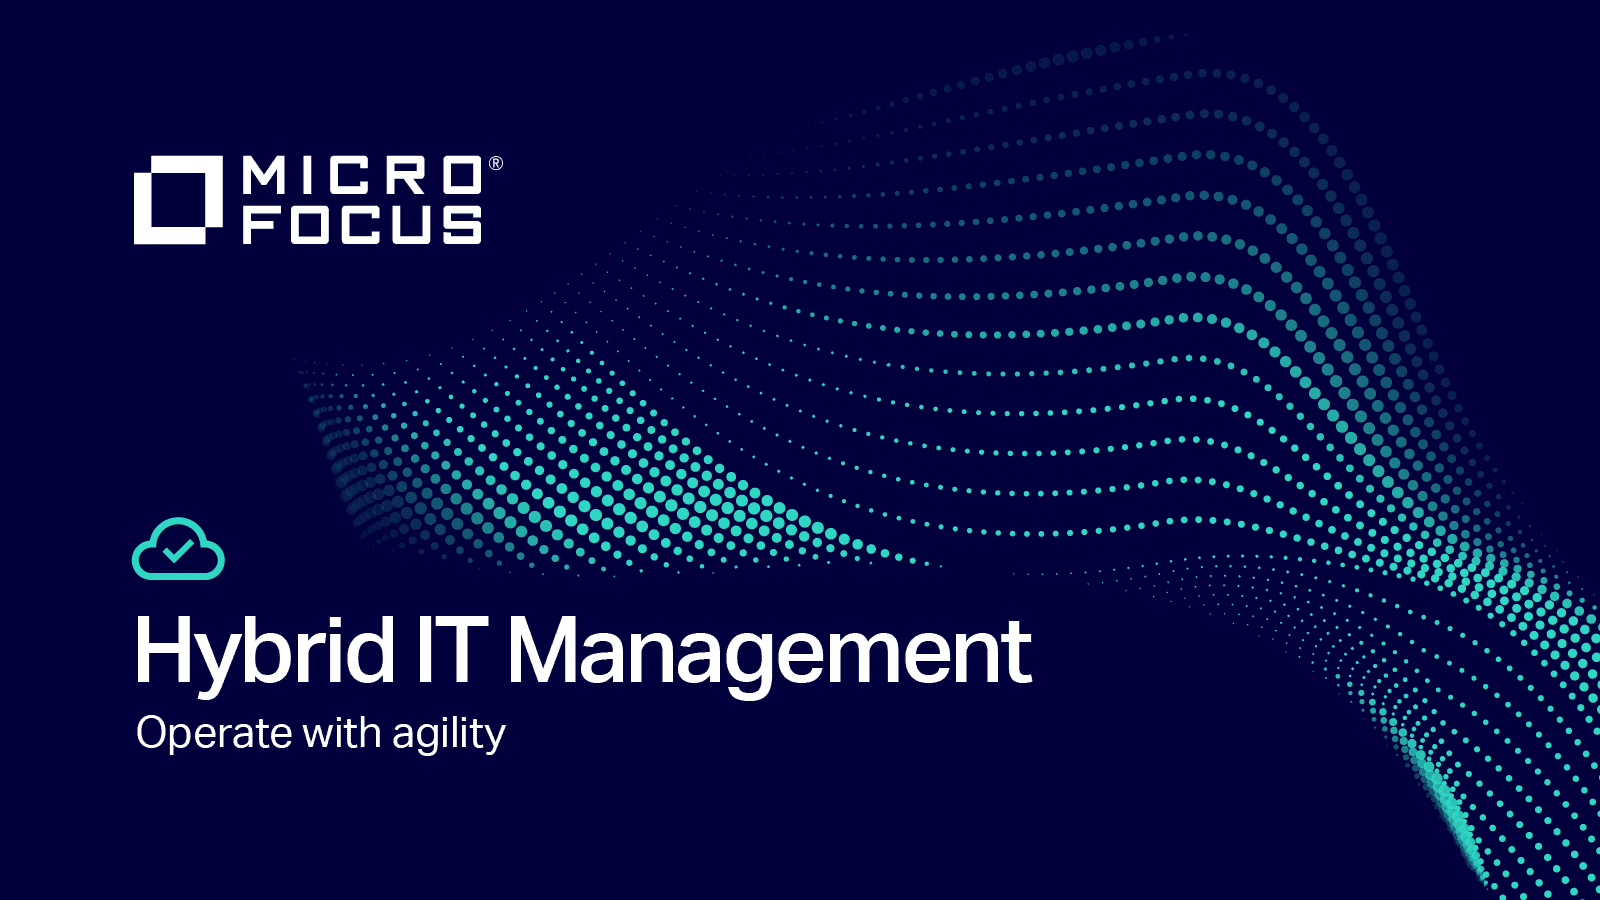 Simplify Hybrid It Management Complexity To Transform It Micro Focus